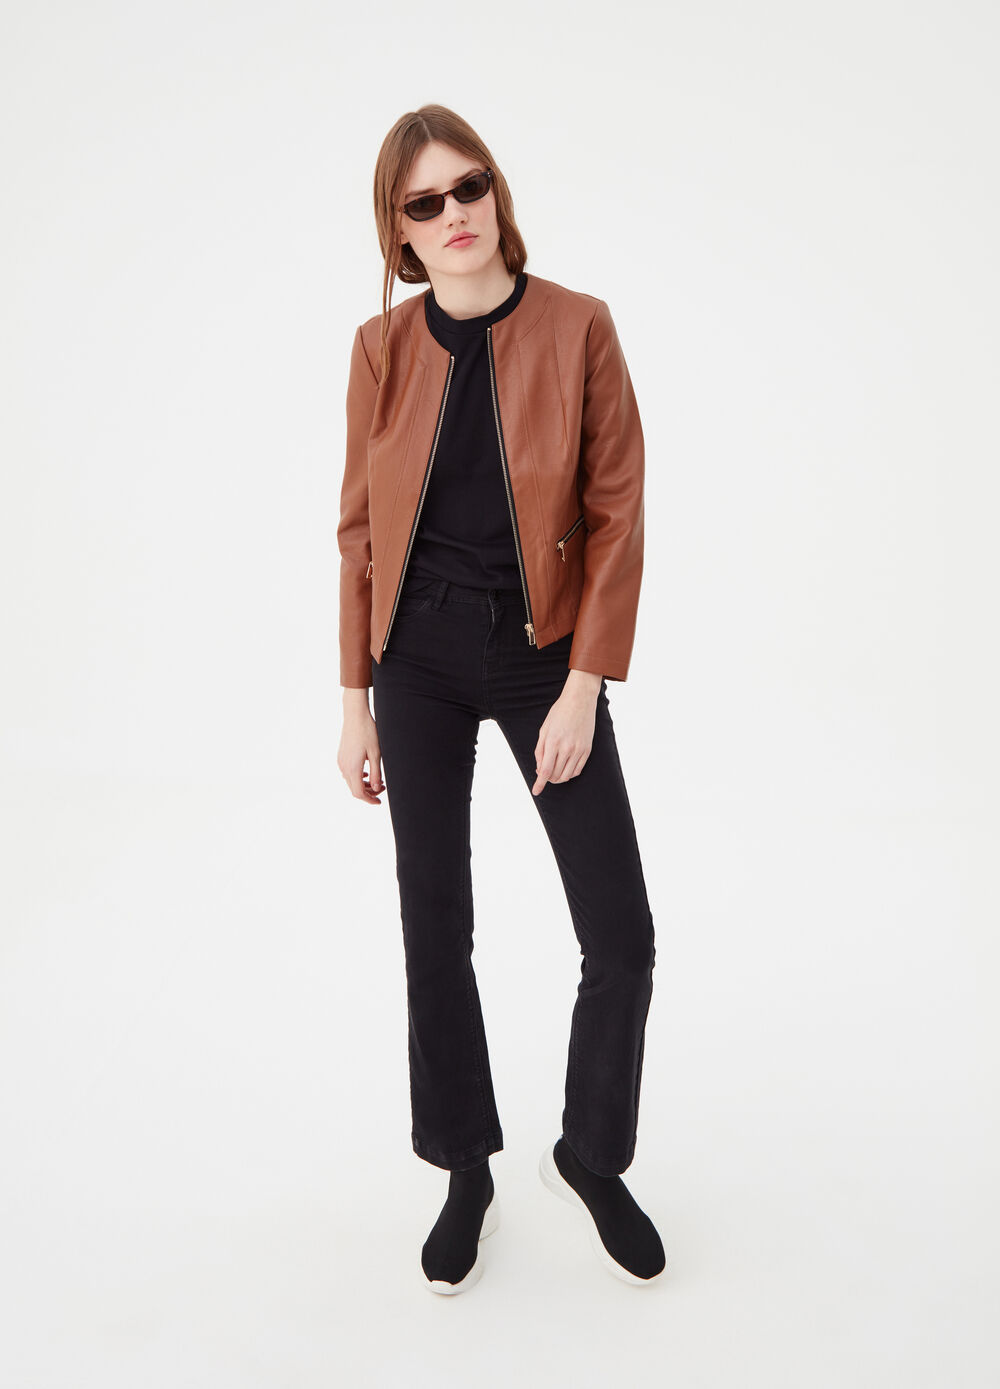 Leather-look jacket with zip pockets